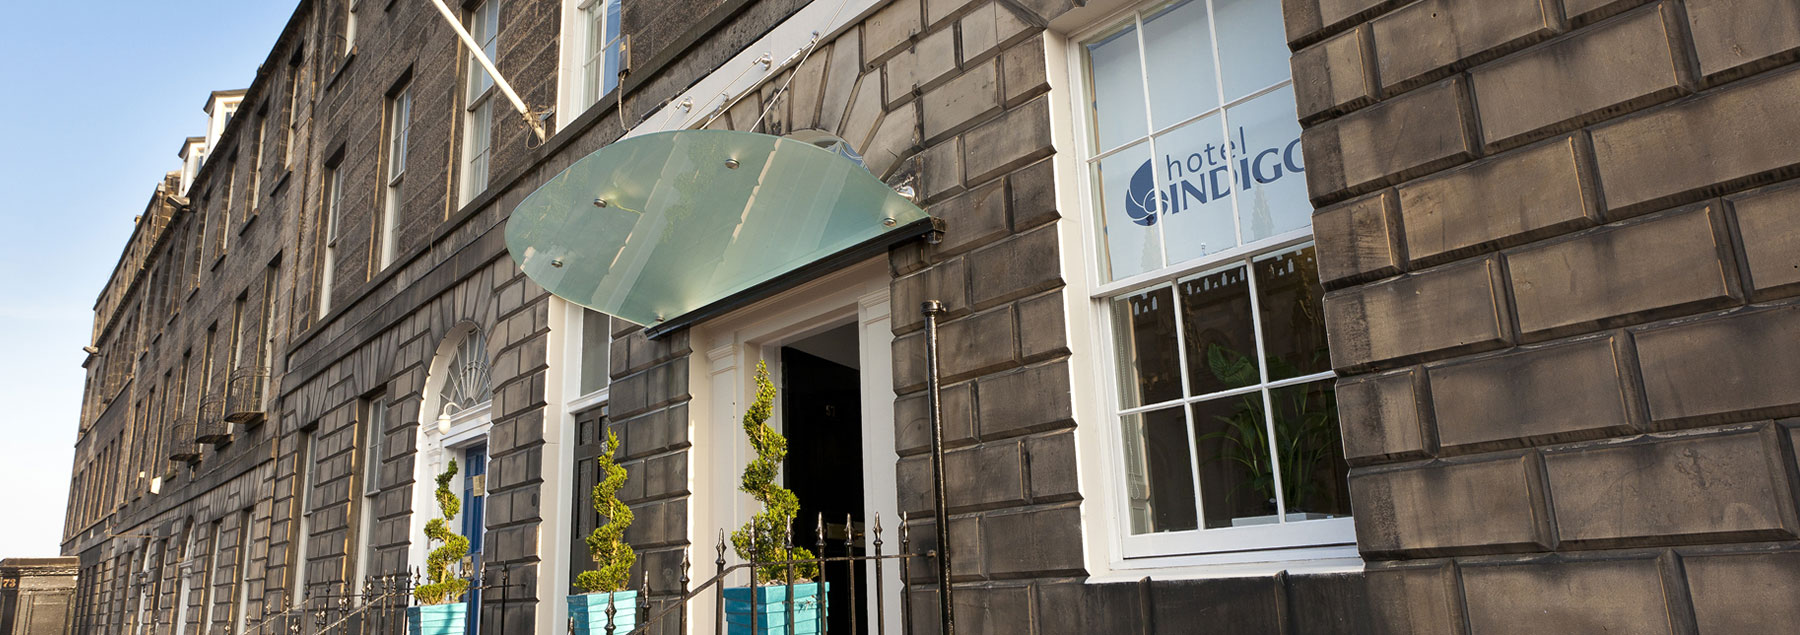 Turquoise Thistle Restaurant at Hotel Indigo - Edinburgh